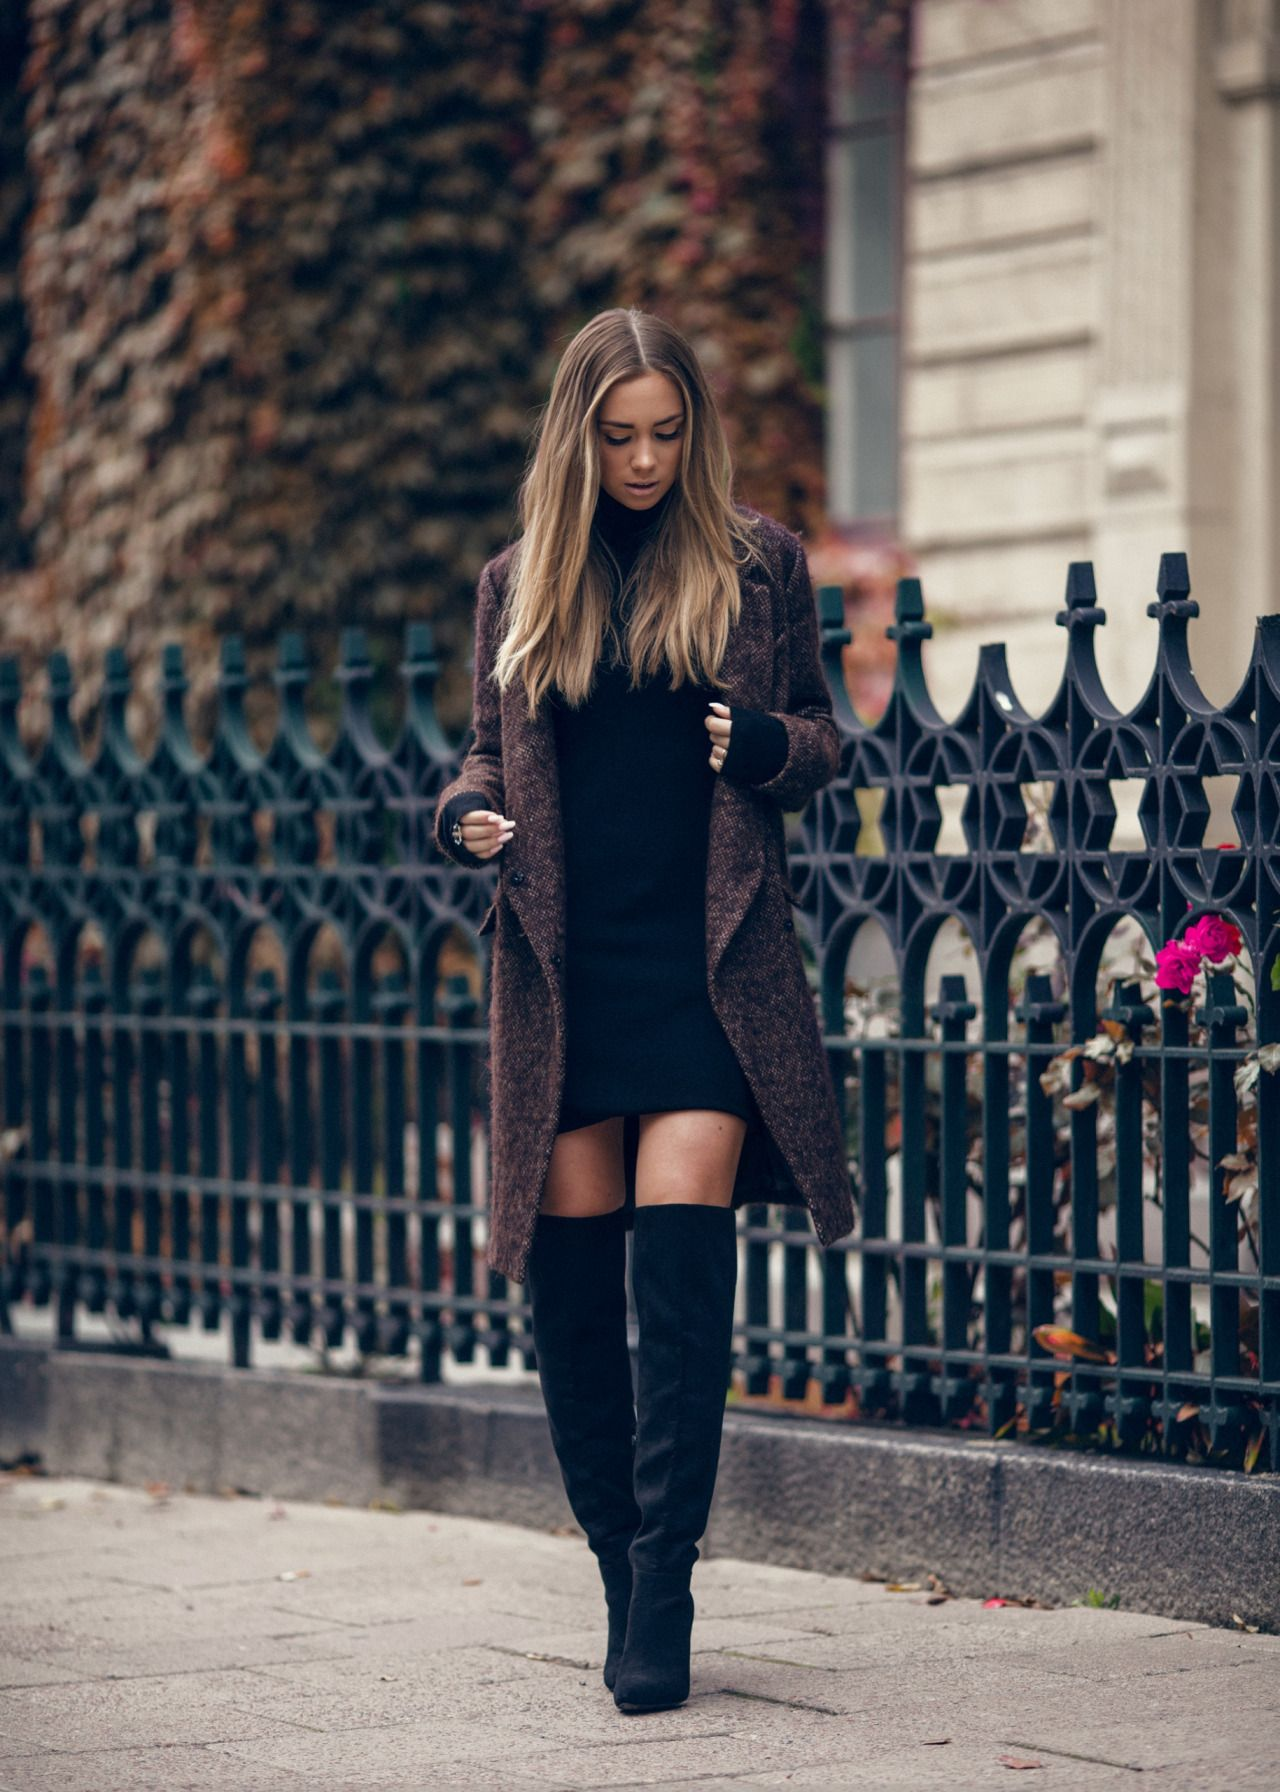 be07596b603 Wearing over the knee boots with bare legs and a mini dress can create the  perfect look for either casual wear or partying. Lisa Olsson smartens up  the look ...